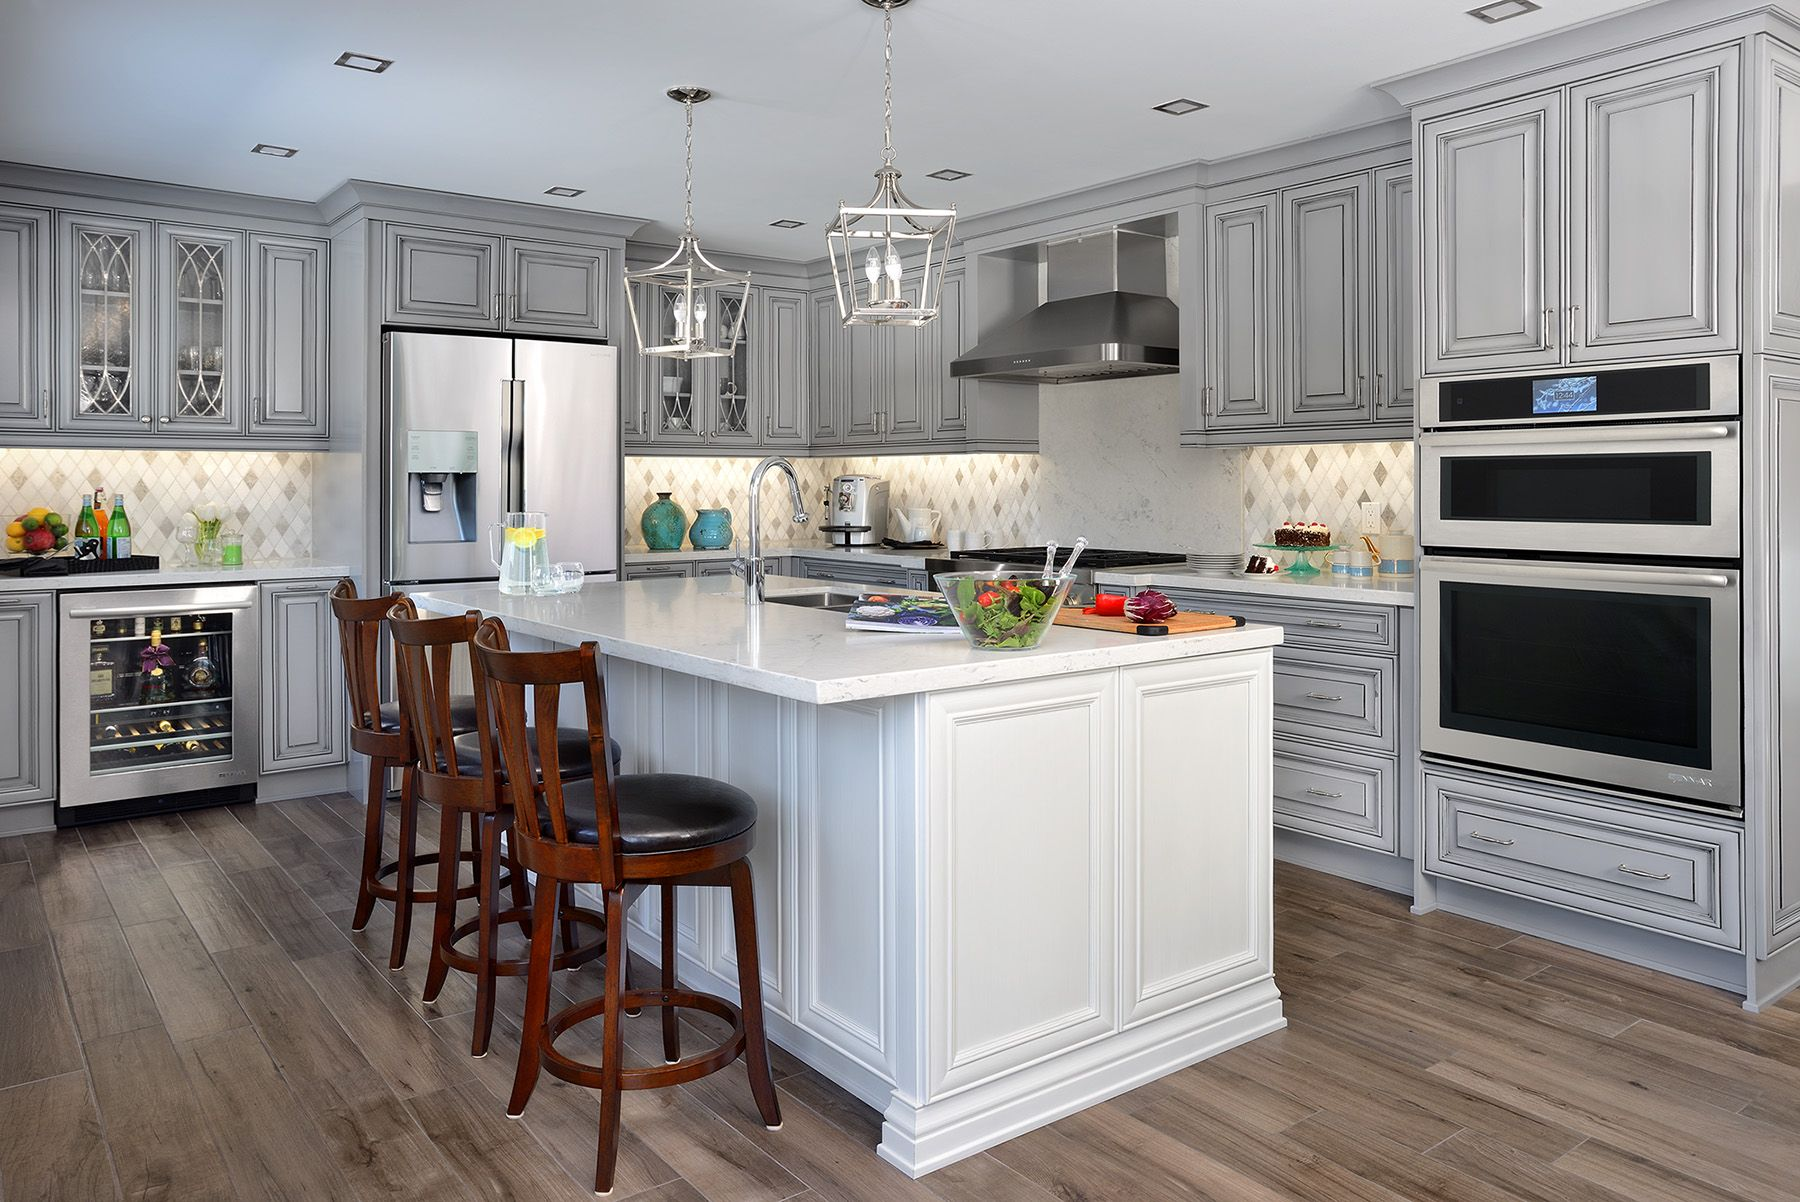 Glacier White Island And Sterling Grey Cabinets Blend Nicely